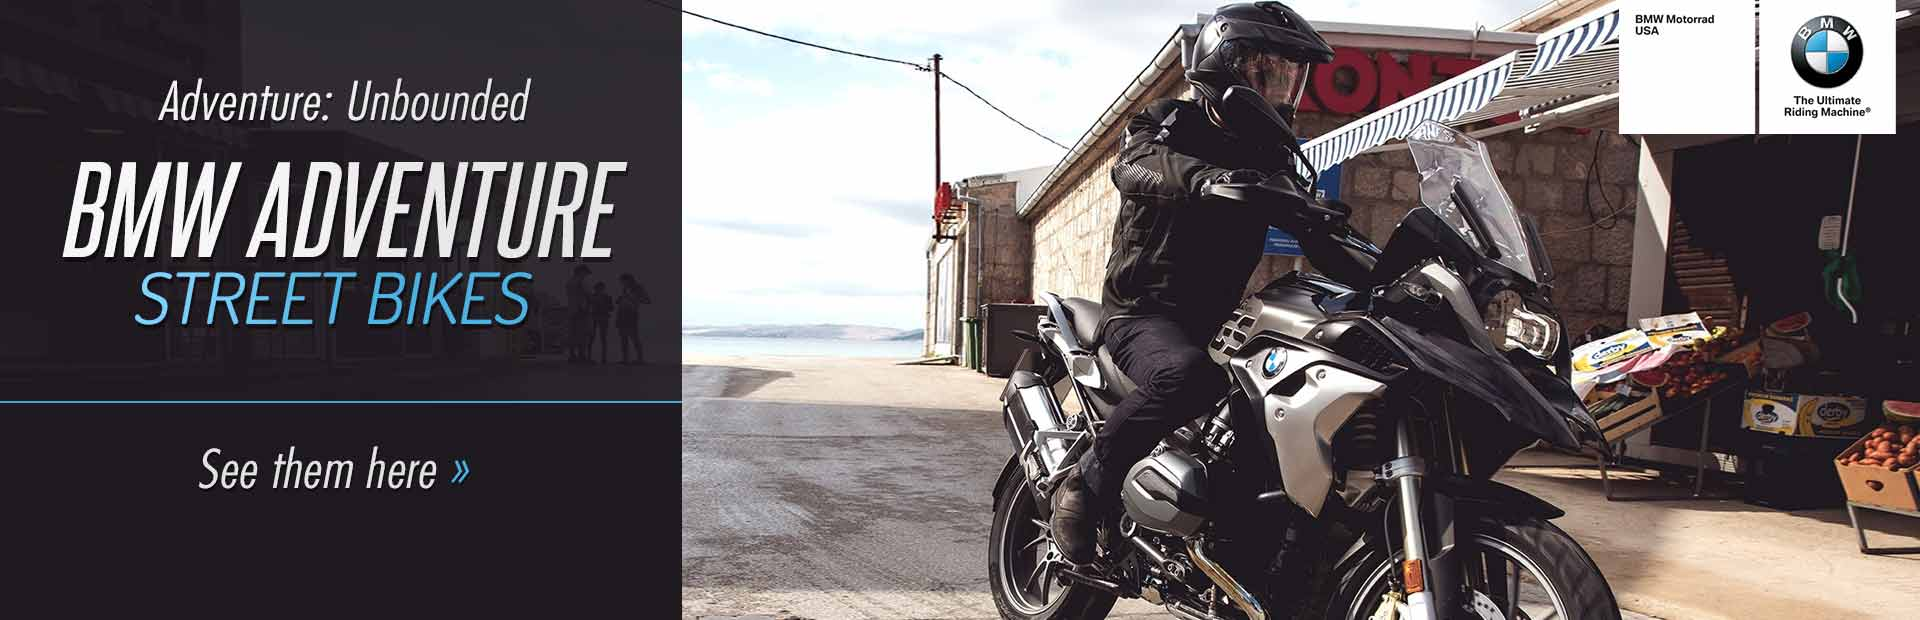 BMW Adventure Street Bikes: Click here to view the models.